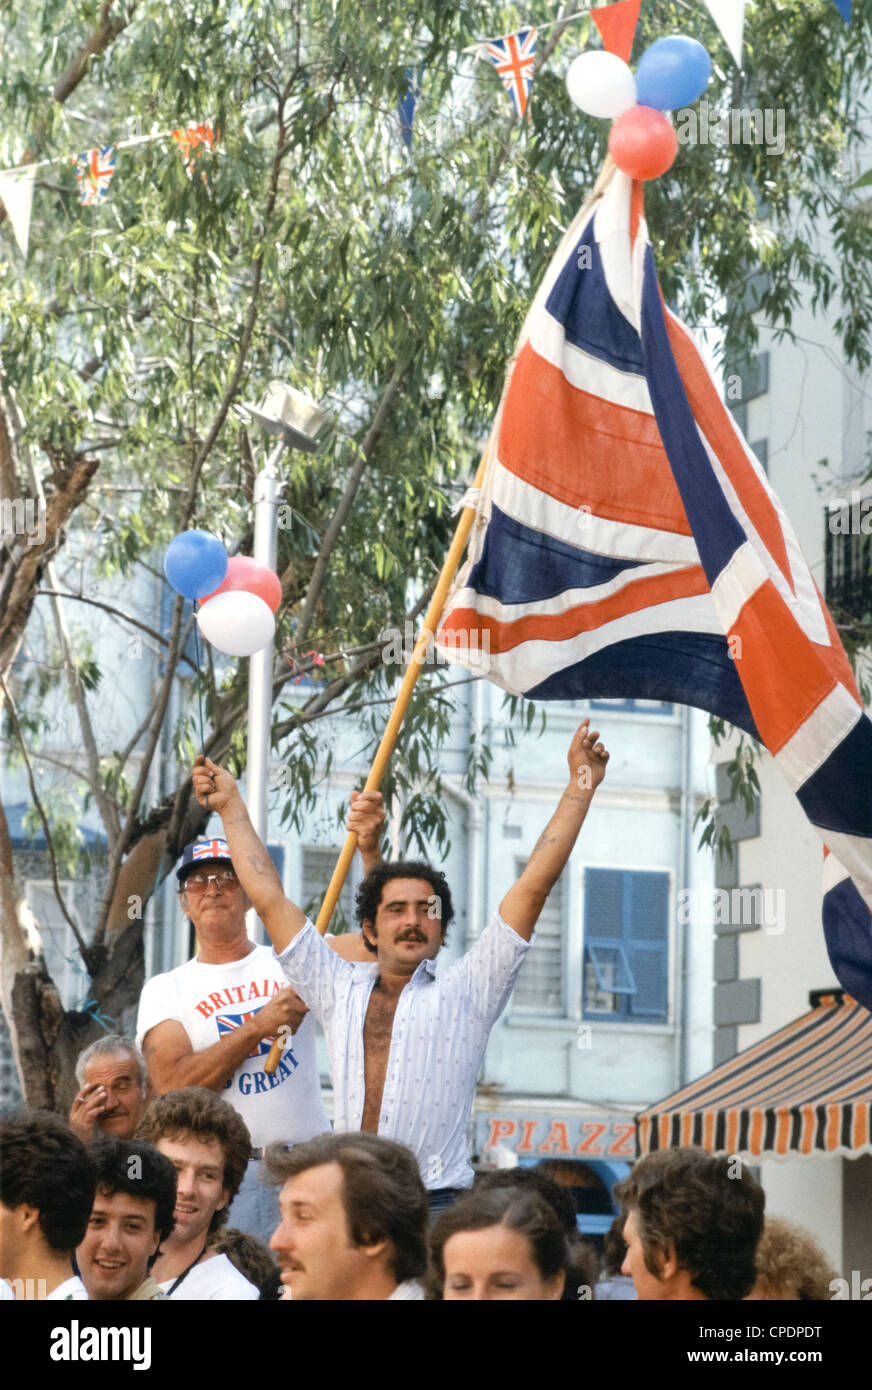 union jack flags britain is great patriotism in gibraltar a